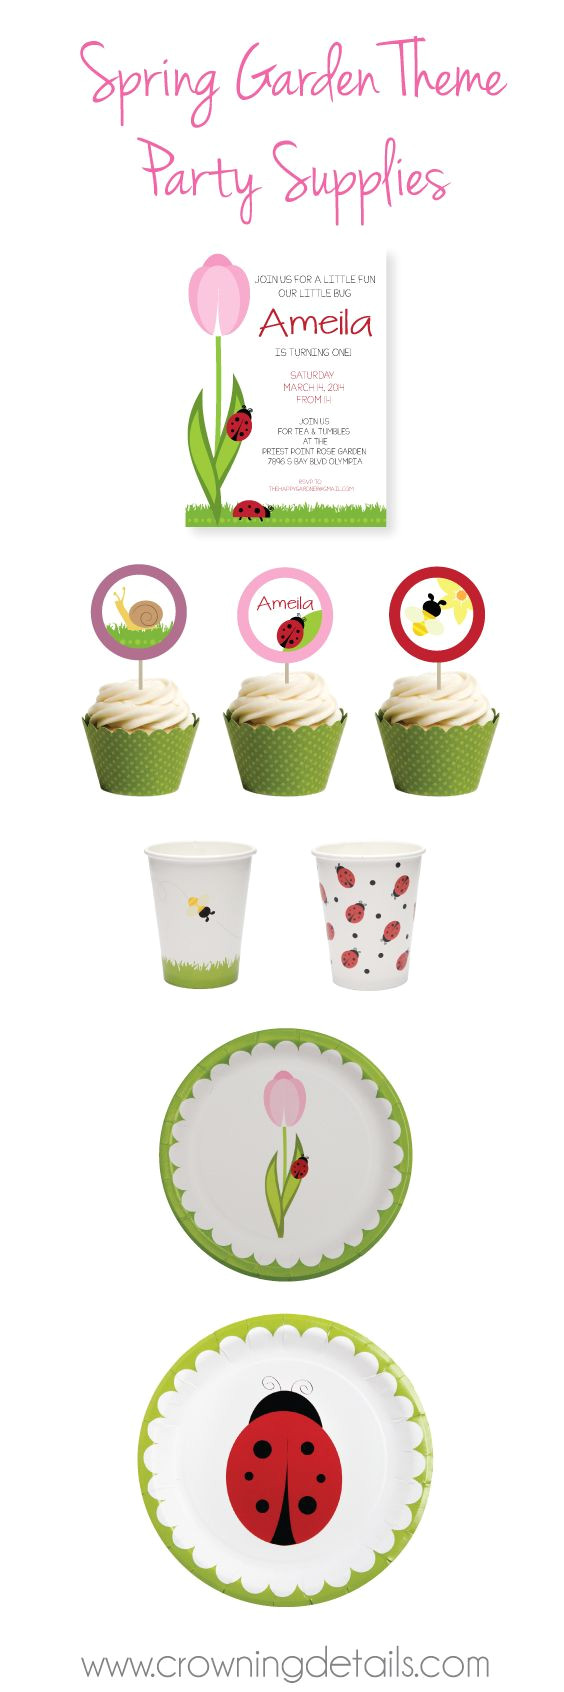 ladybug party supplies for your spring garden theme shop this collection in our online store